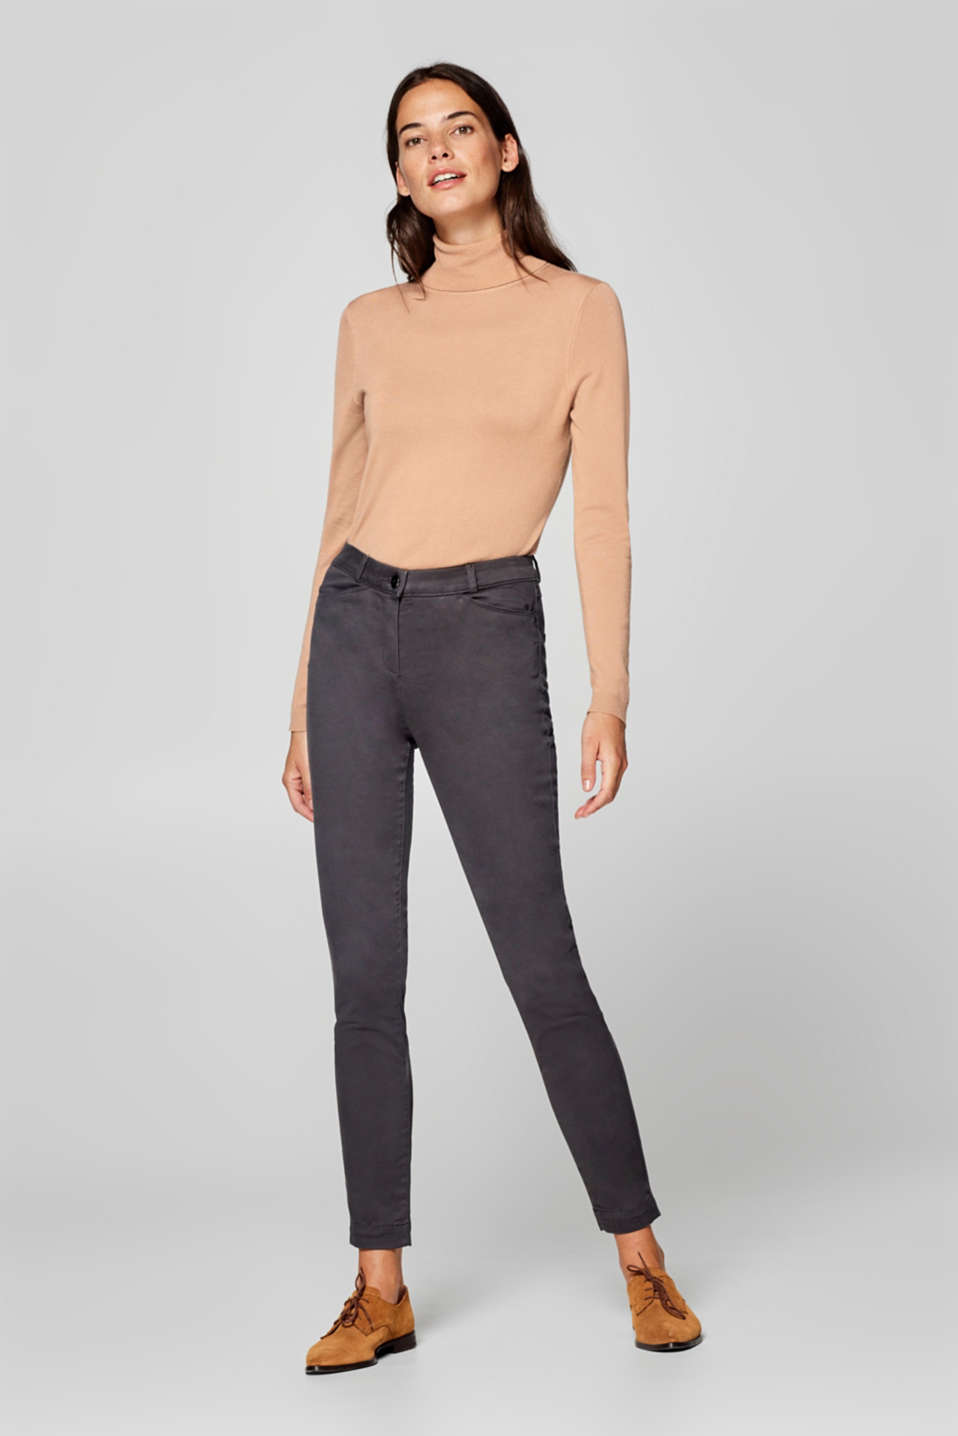 Esprit - Soft stretchy trousers with a high waistband